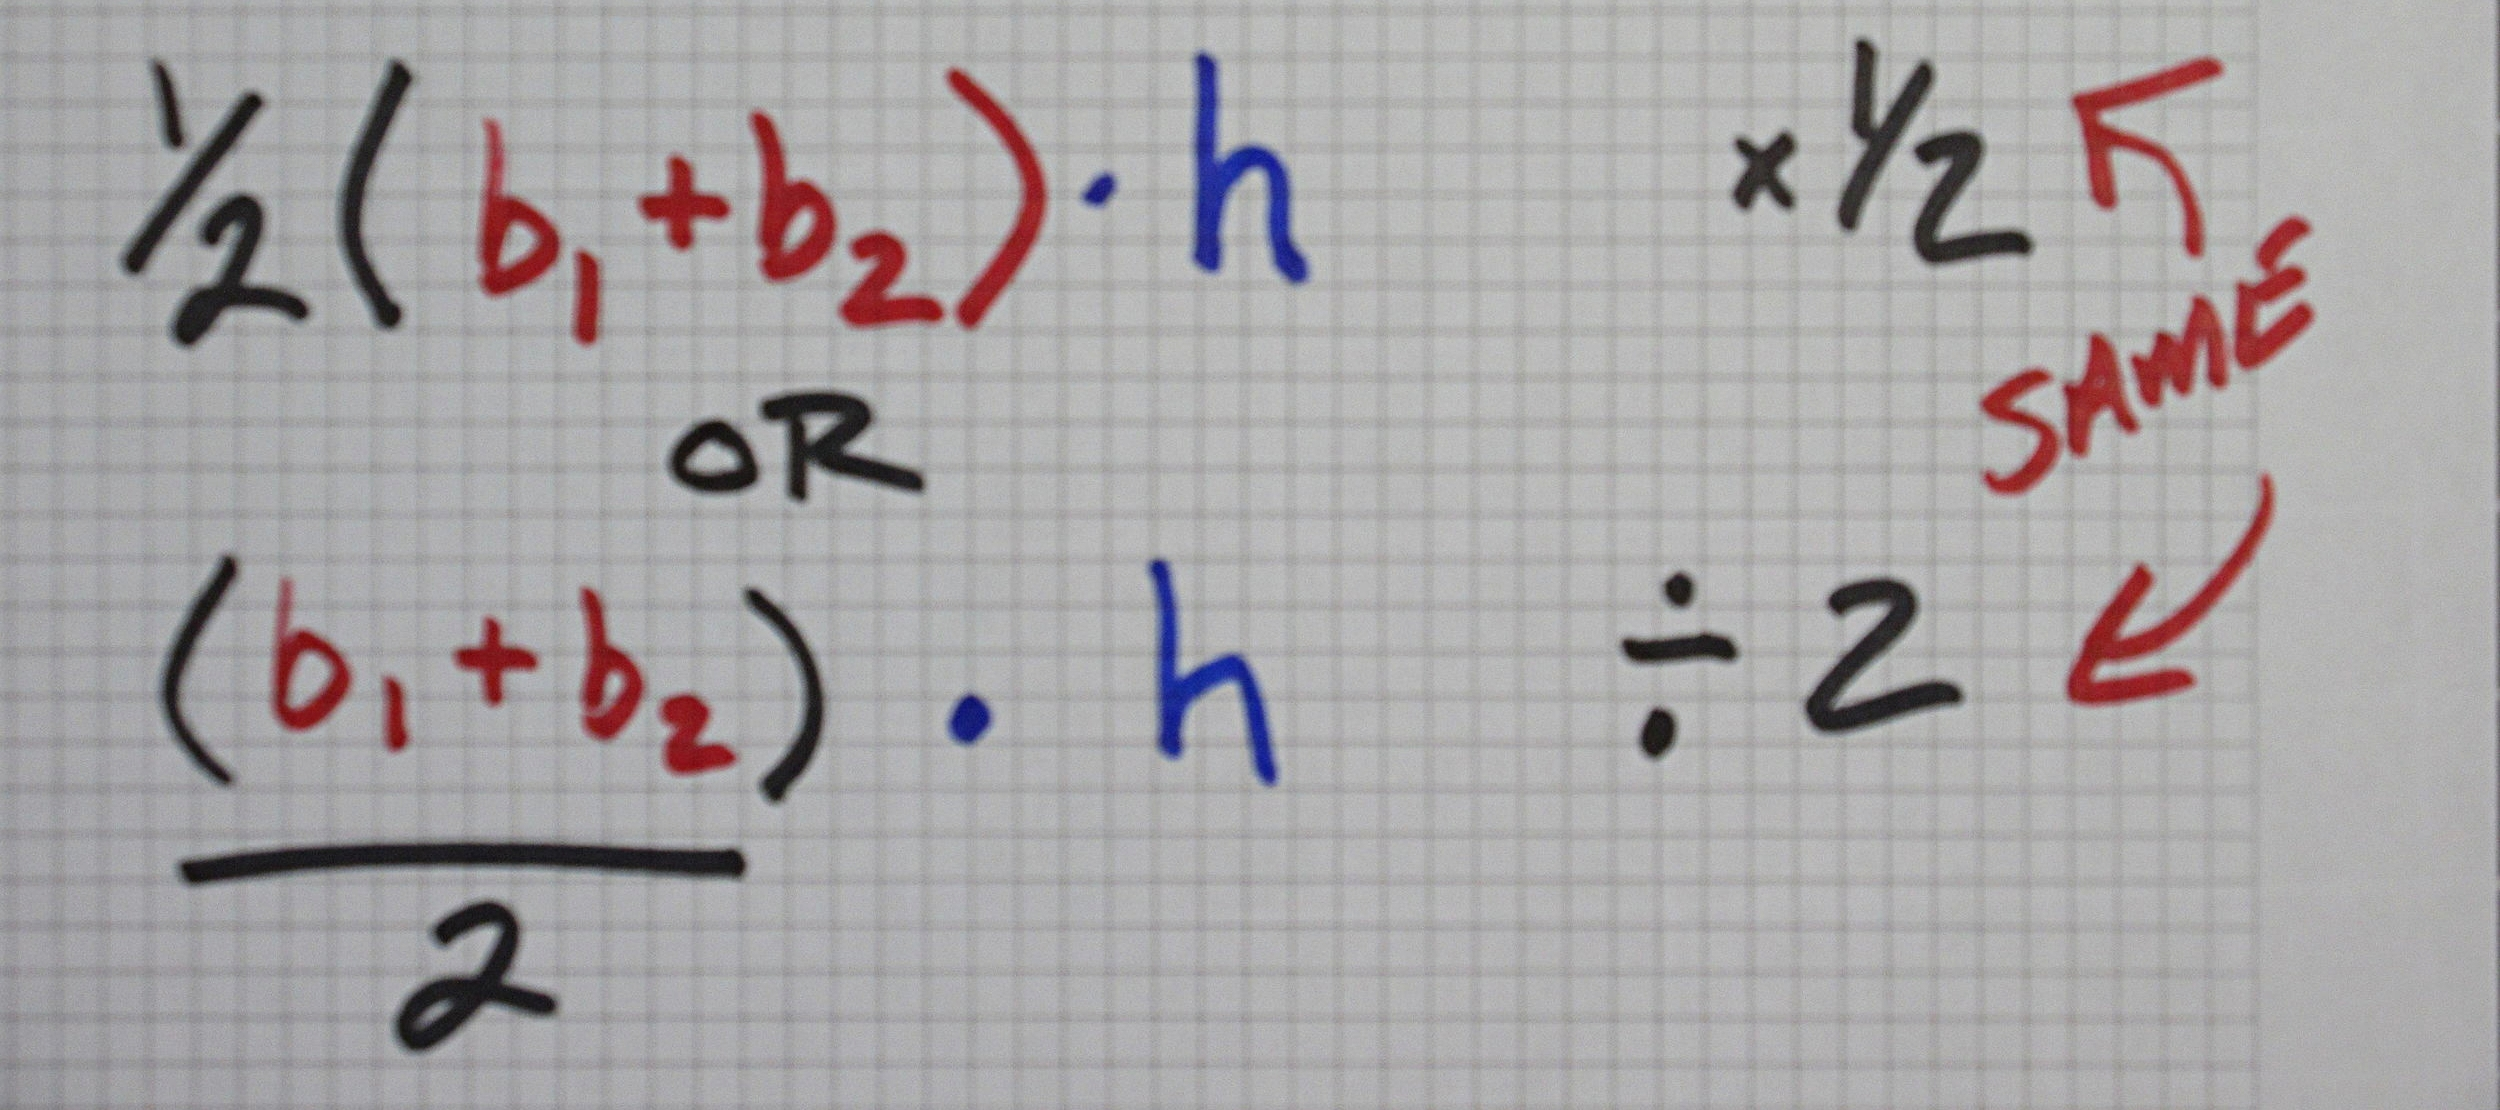 Above: Two different formulas to find Area of Trapezoids